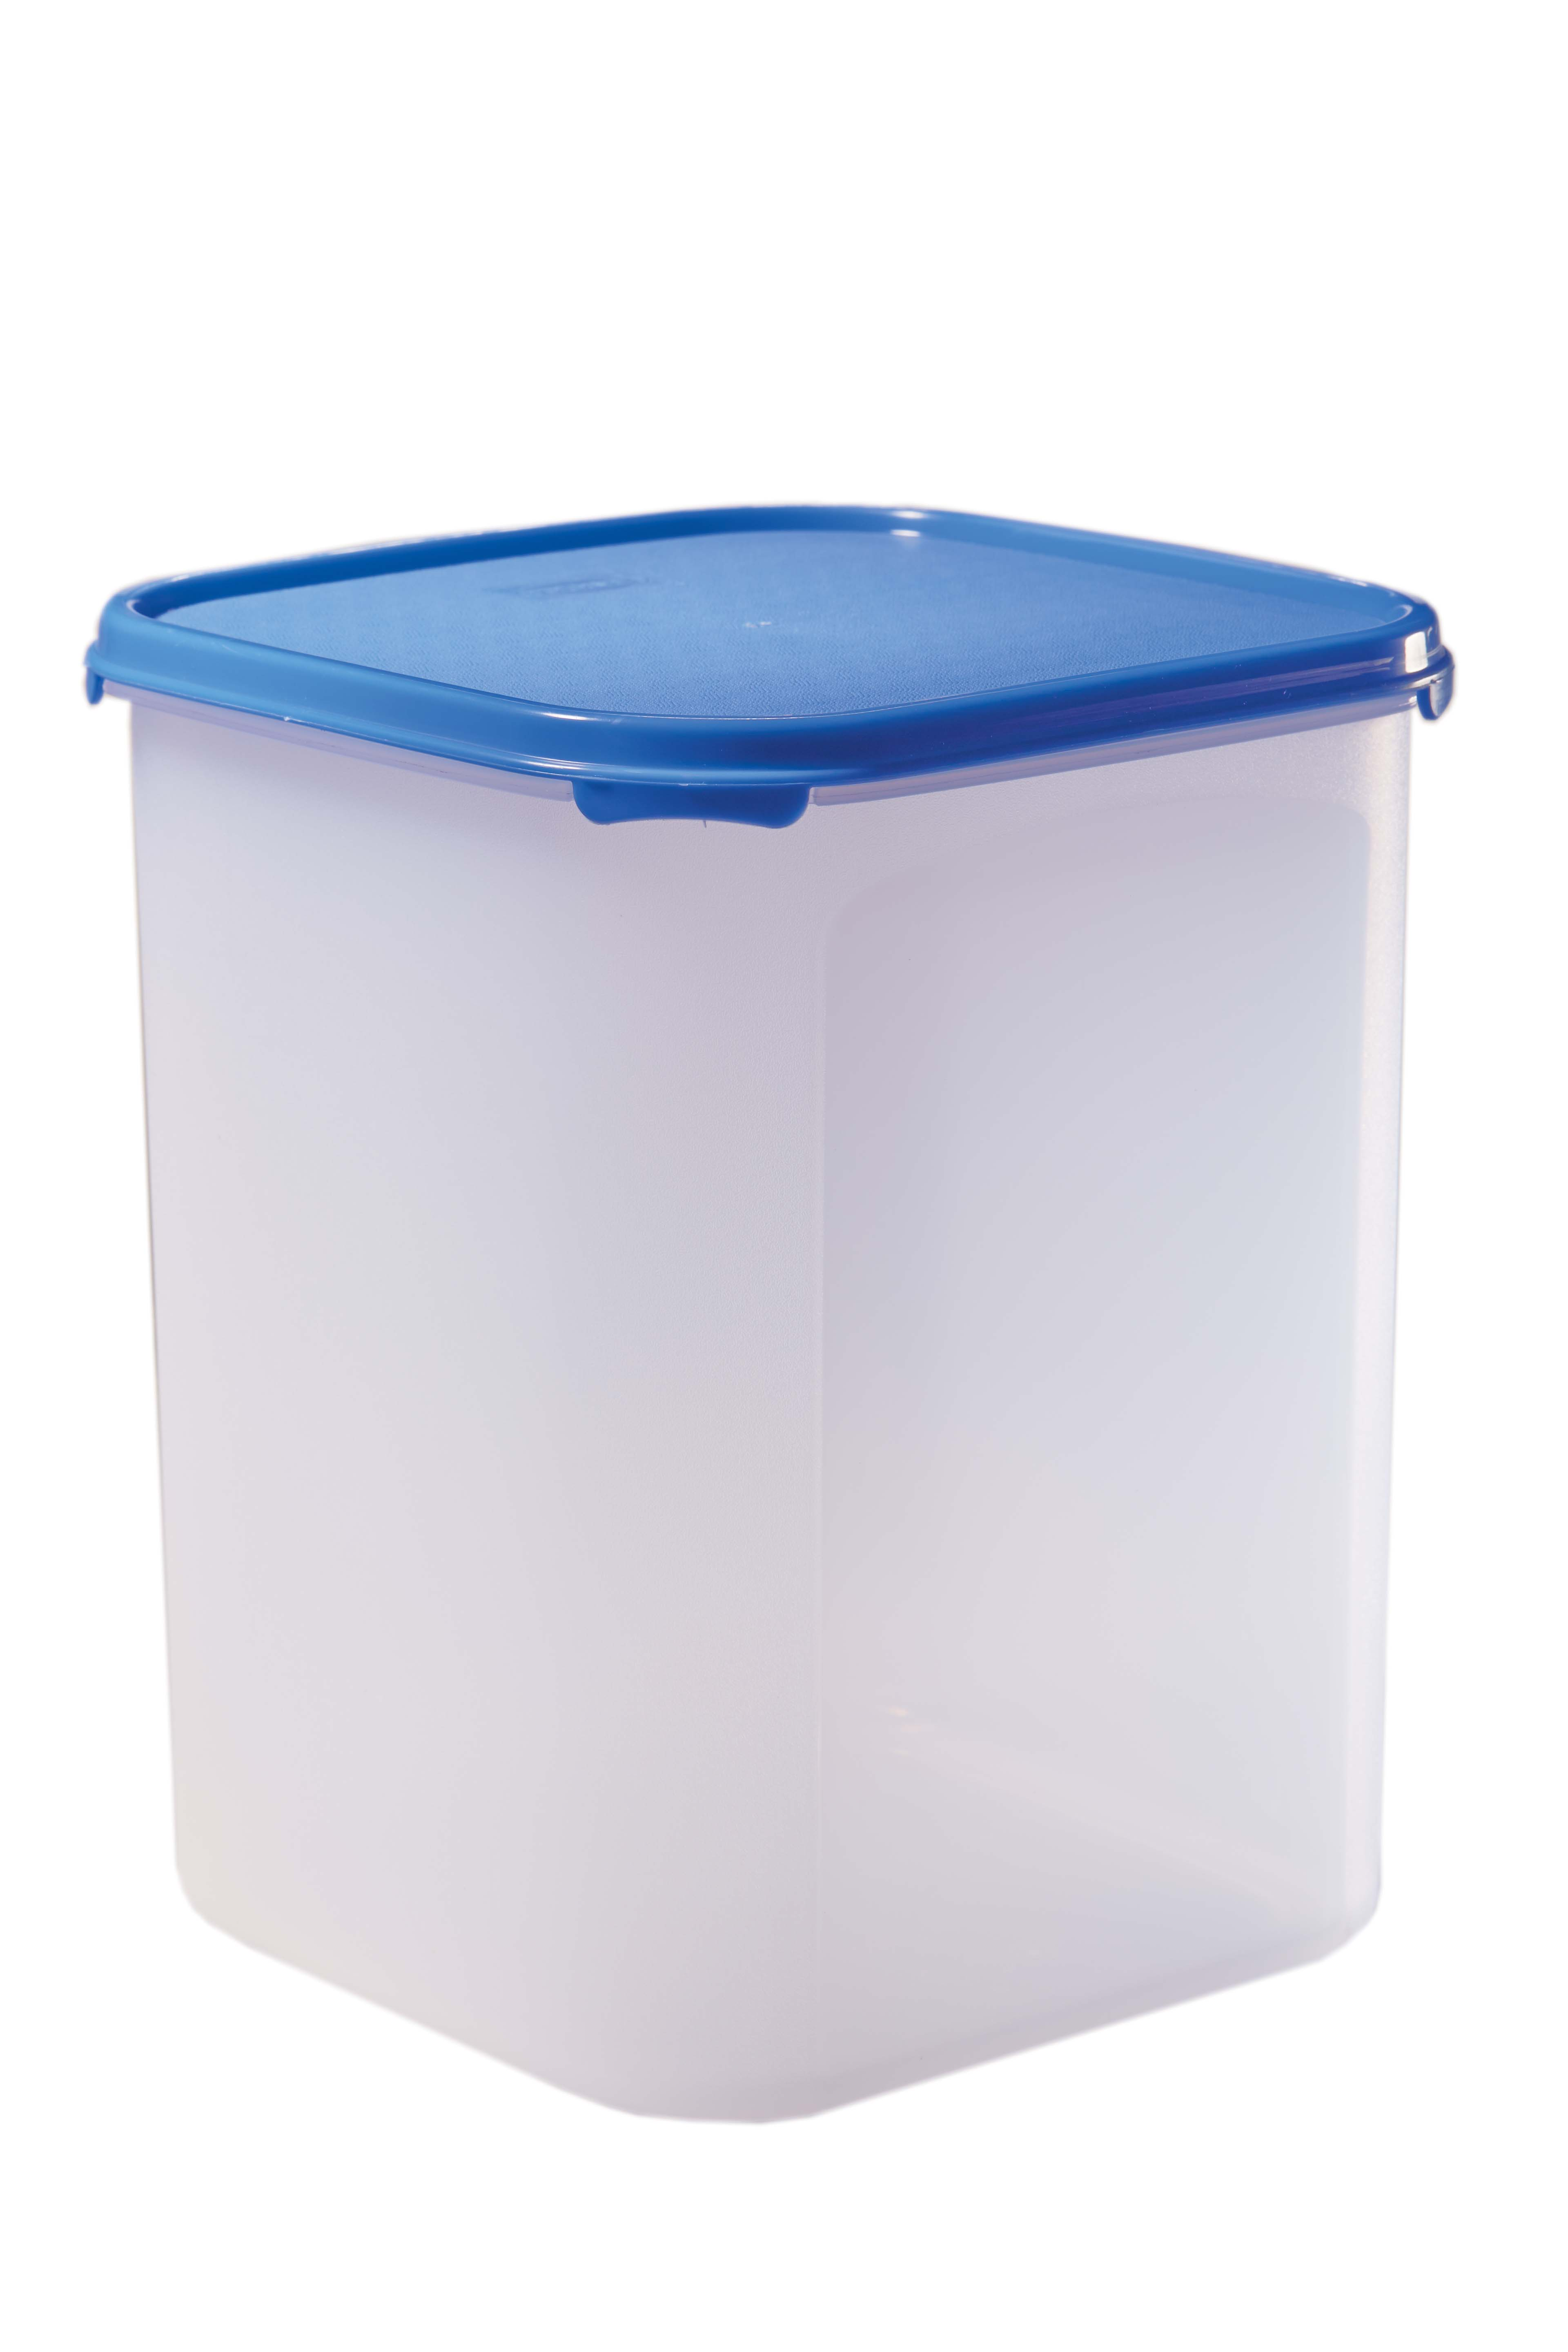 Magic Seal Polyproplene Thermoware in Transparent With Blue Lid Colour by Living Essence